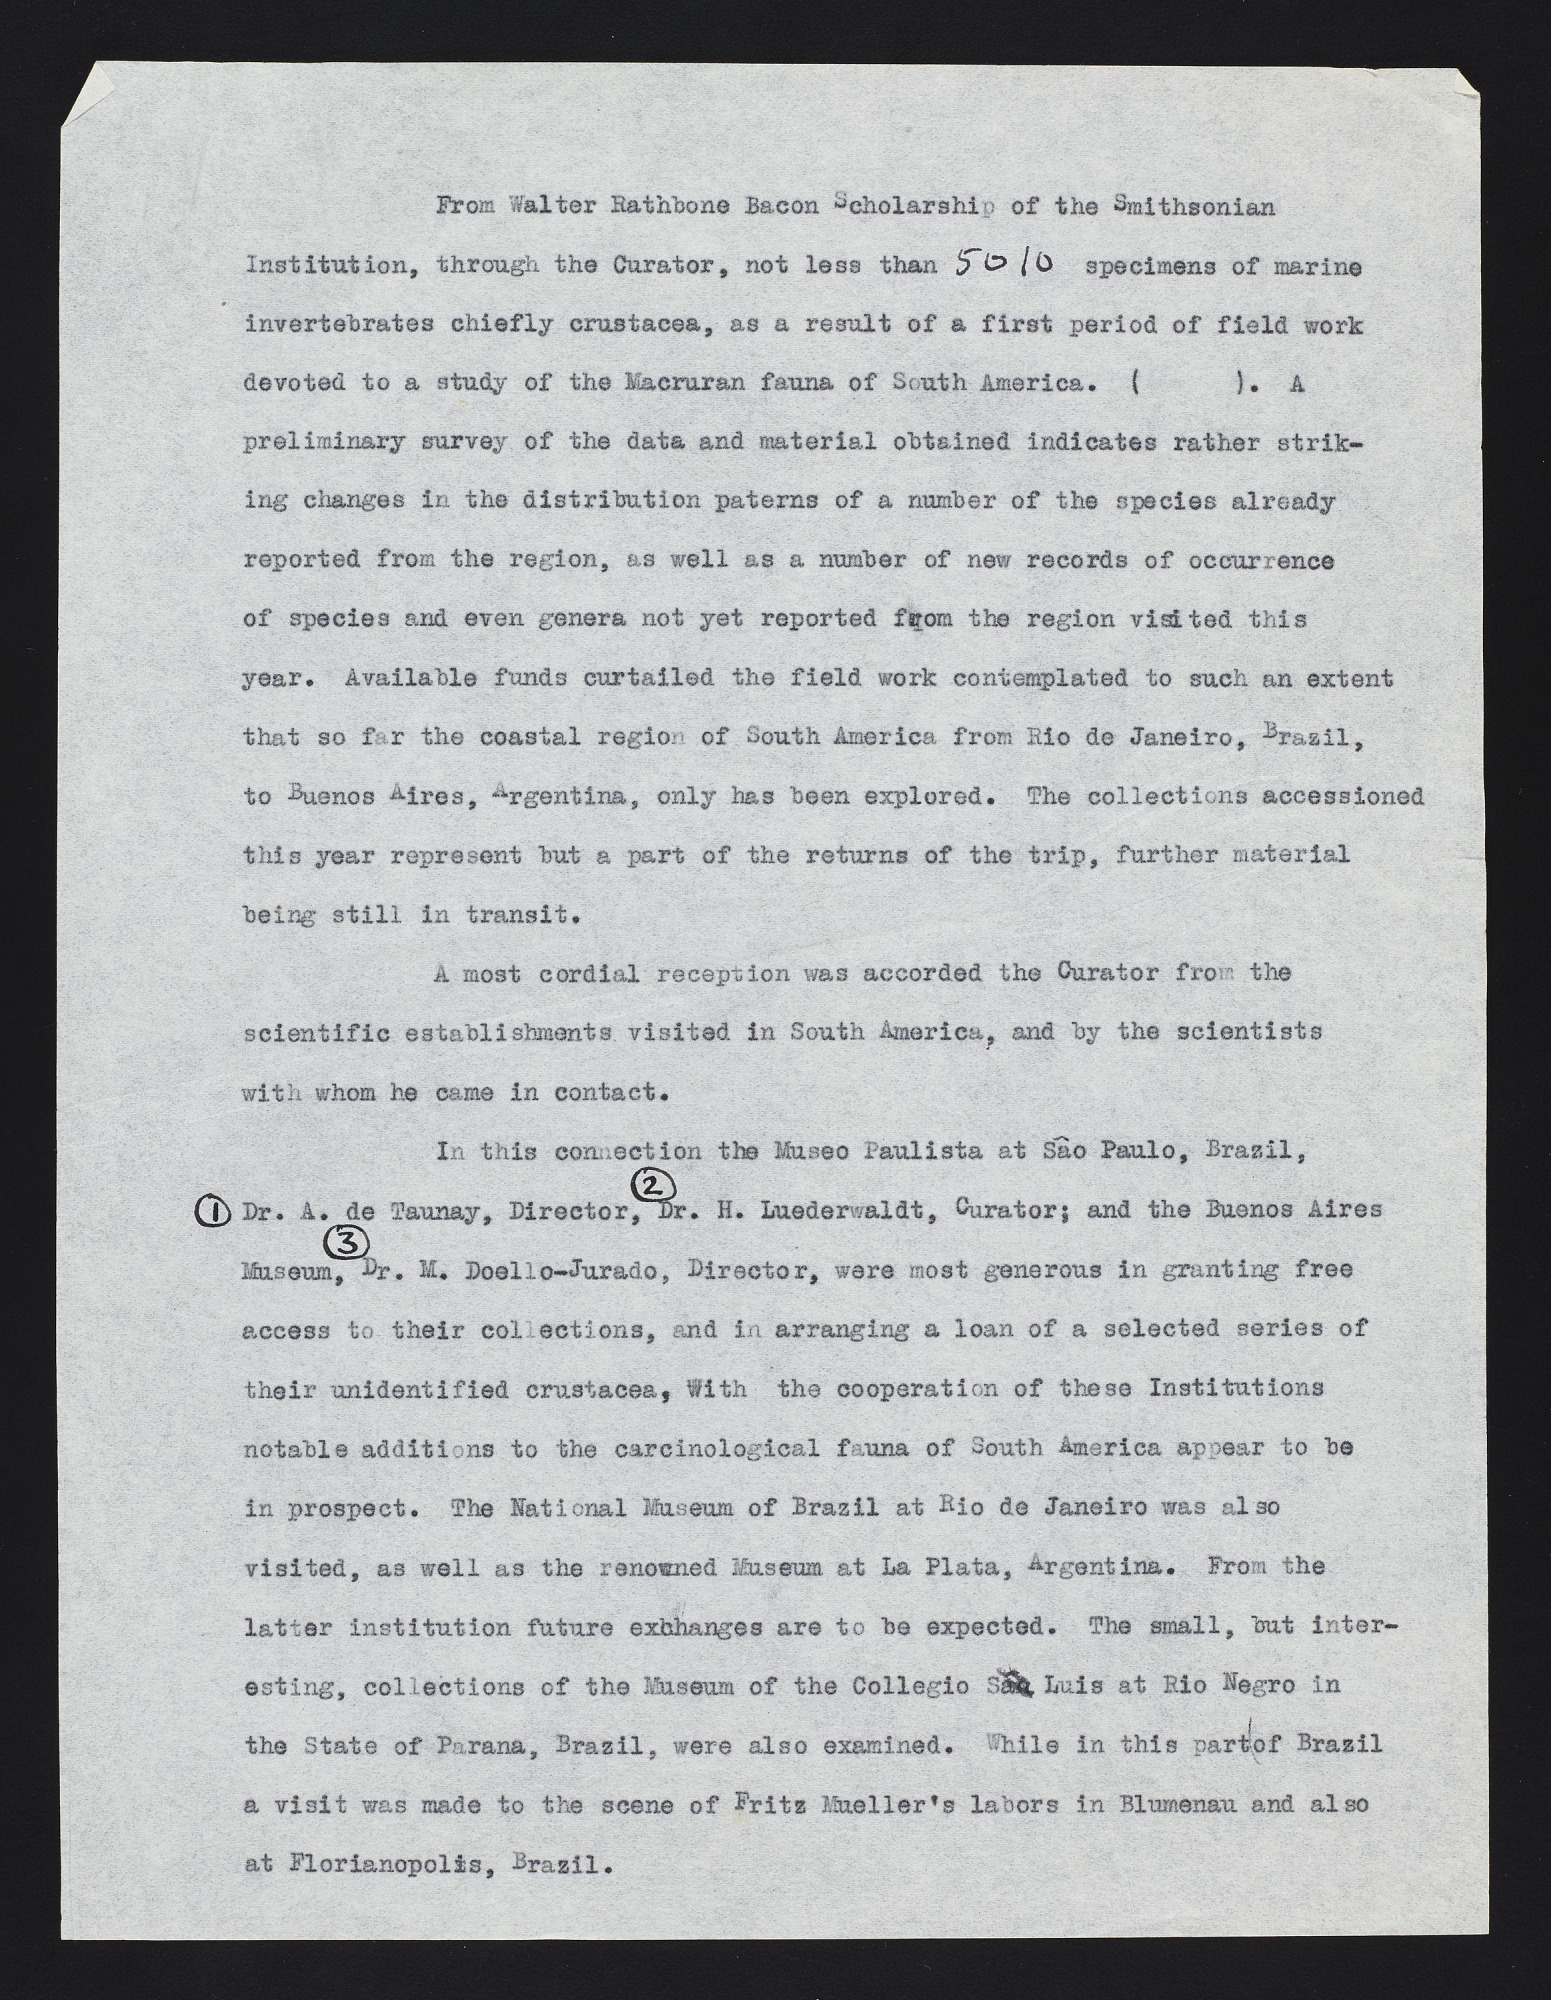 Walter Rathbone Bacon Traveling Scholarship Expeditions to the East and West Coasts of South America, 1925-1927 : reports on the expeditions by Waldo LaSalle Schmitt